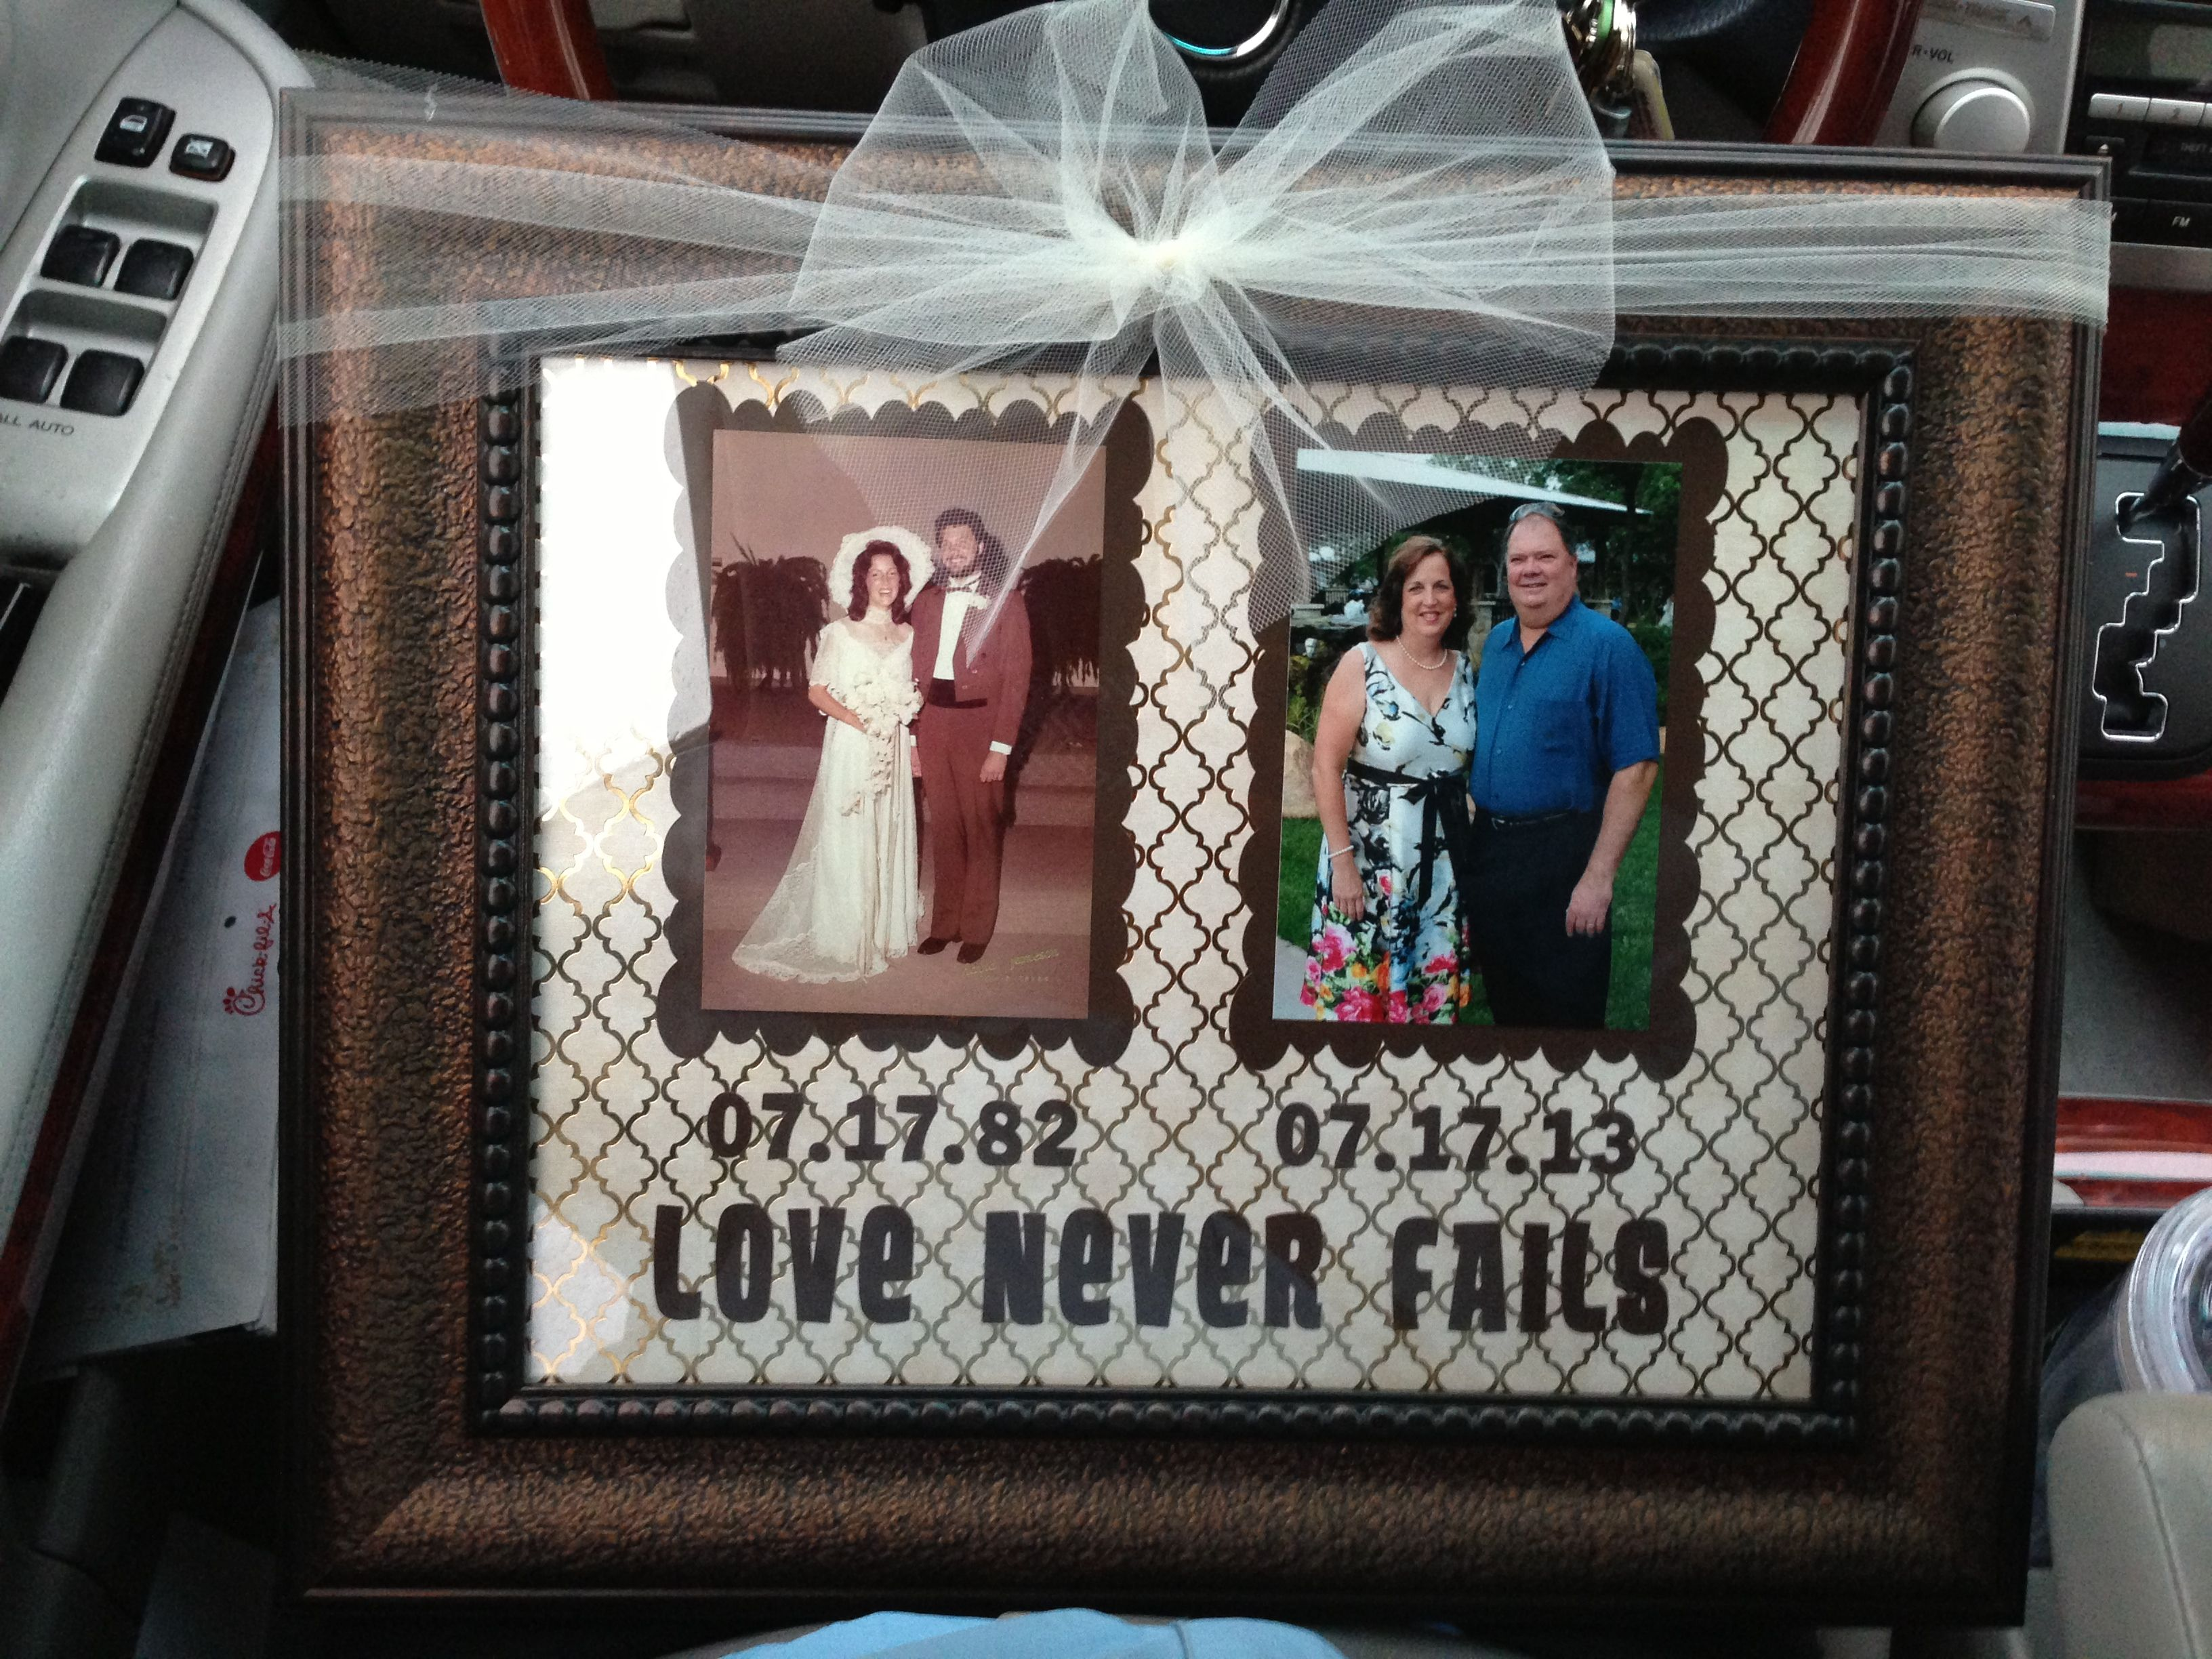 60th Wedding Anniversary Gifts For Parents: Anniversary Gift For My Parents, 1 Corinthians 13:8